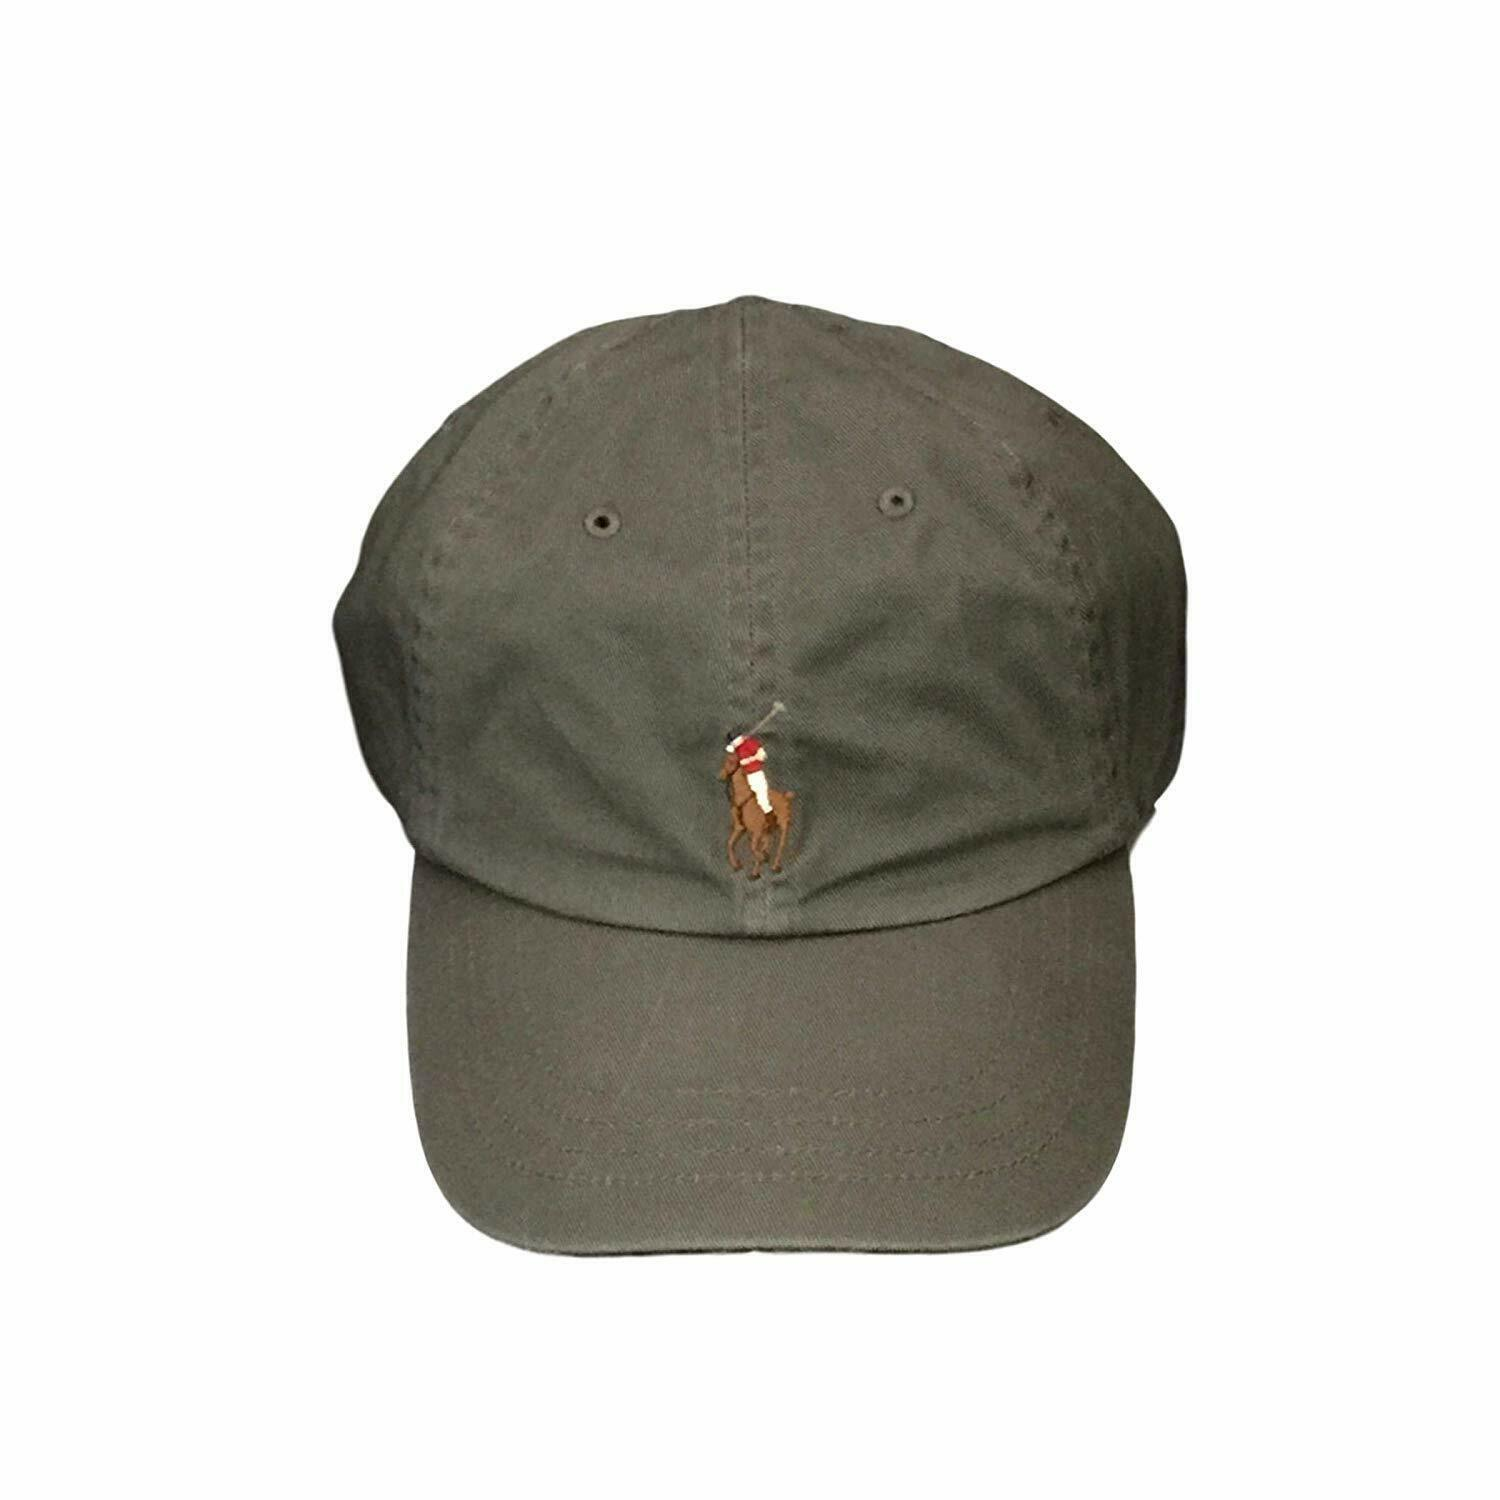 c242c52e5 Polo Ralph Lauren Chino Baseball Cap College Grey Colored Pony One Size -   33.62